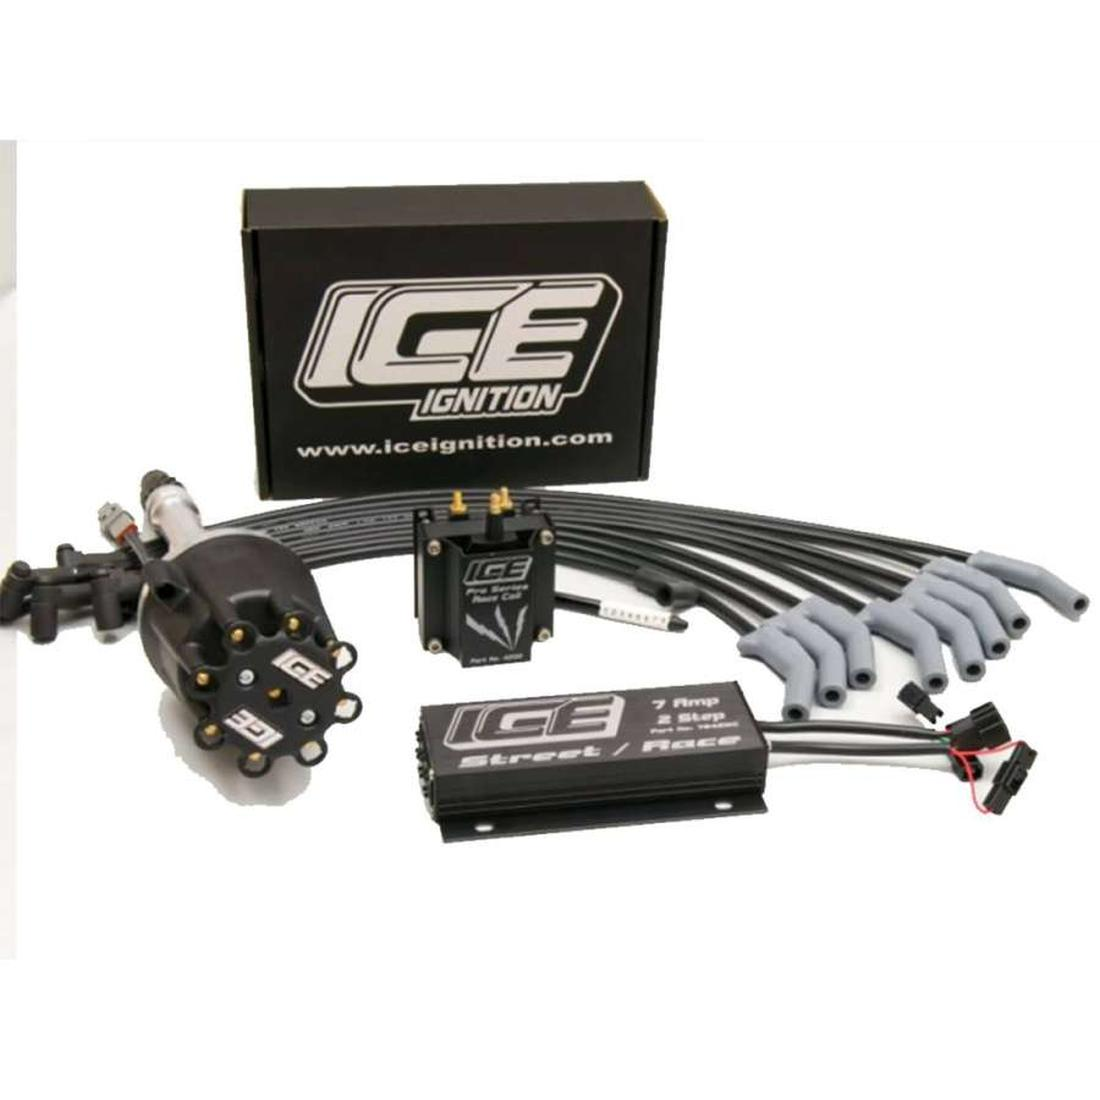 Ice Ignition 7 AMP Digital Street / Race 2 Step Ignition Kit Holden 253 308 355 383 V8 image